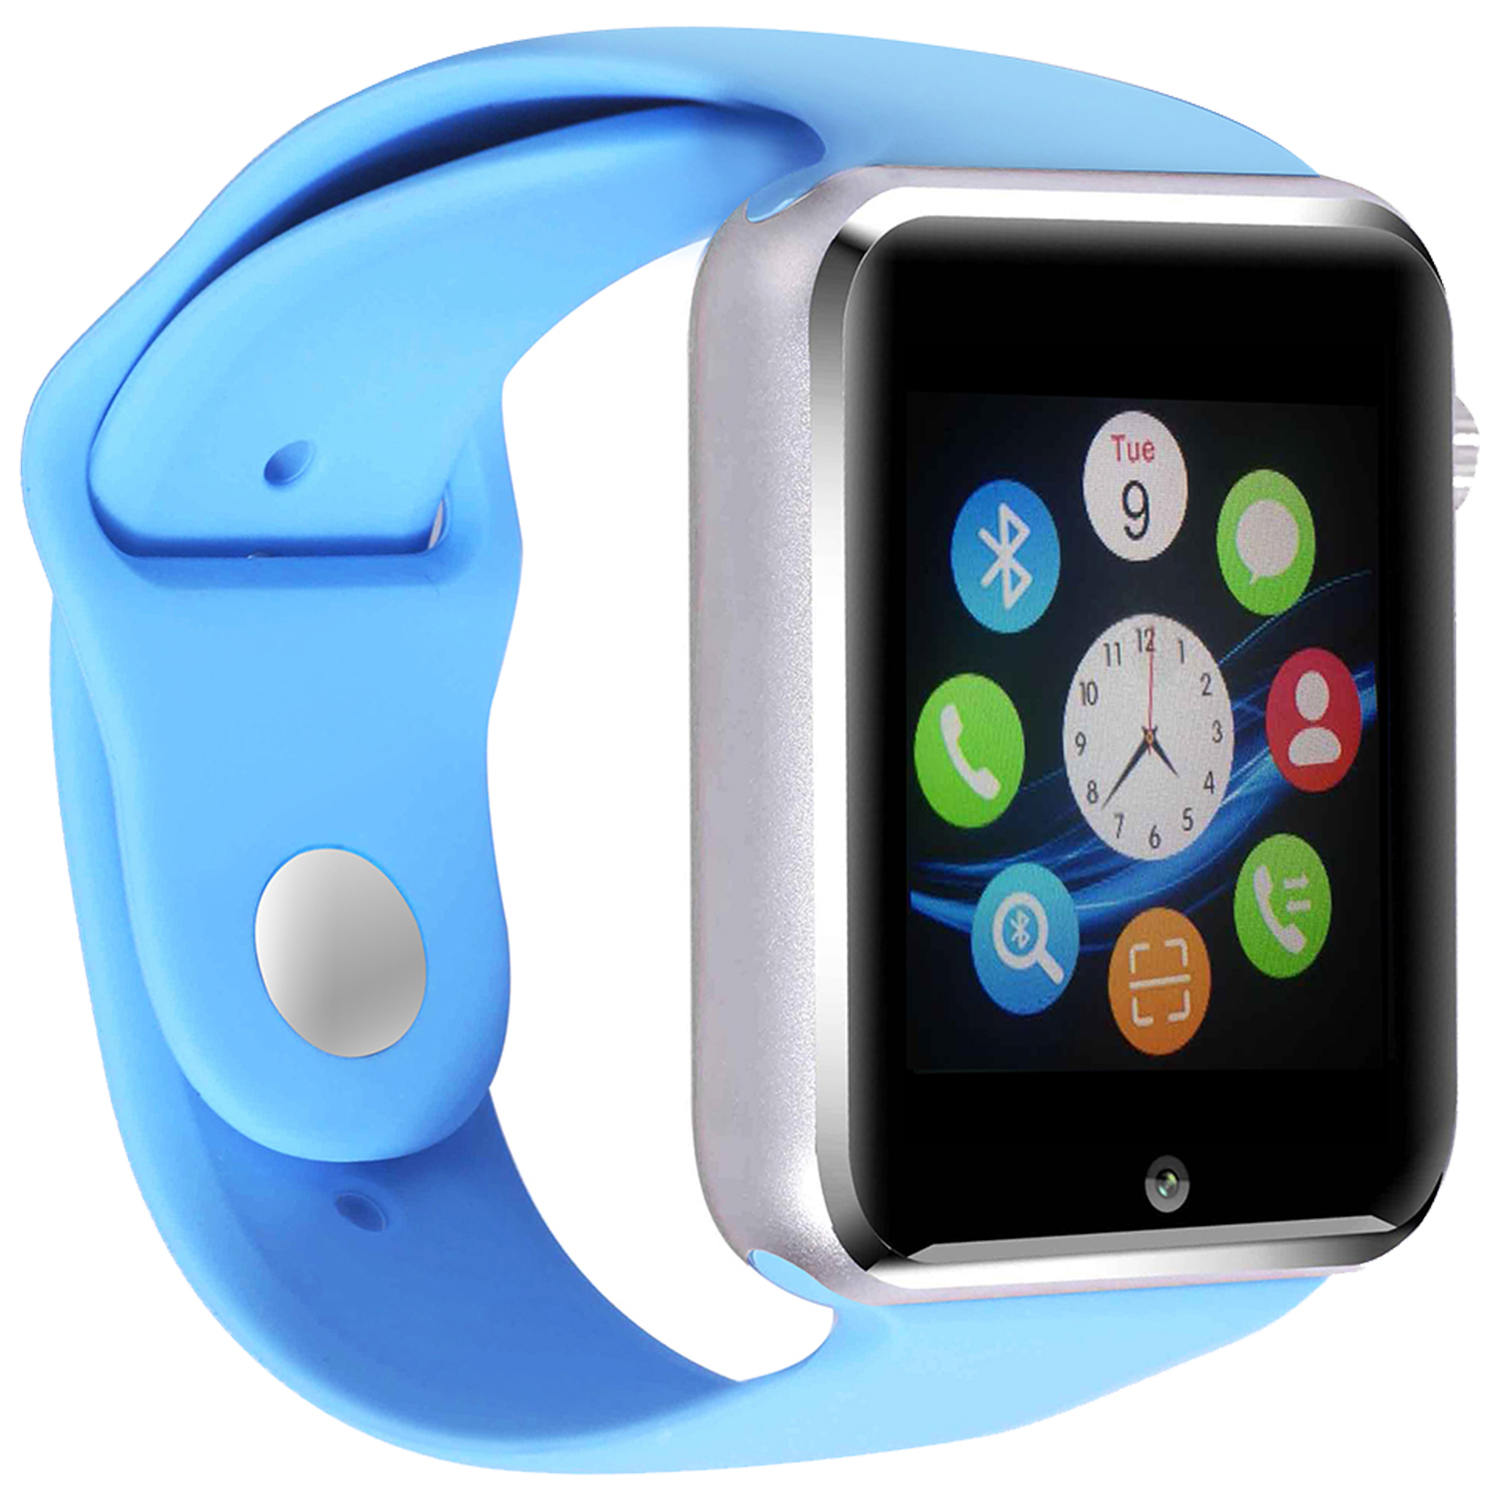 Premium Blue Bluetooth Smart Wrist Watch Phone mate for Android Touch Screen Blue Tooth Smart Watch with Camera for Adults for Kids (Supports [does not include] SIM+MEMORY CARD) Amazingforless G10